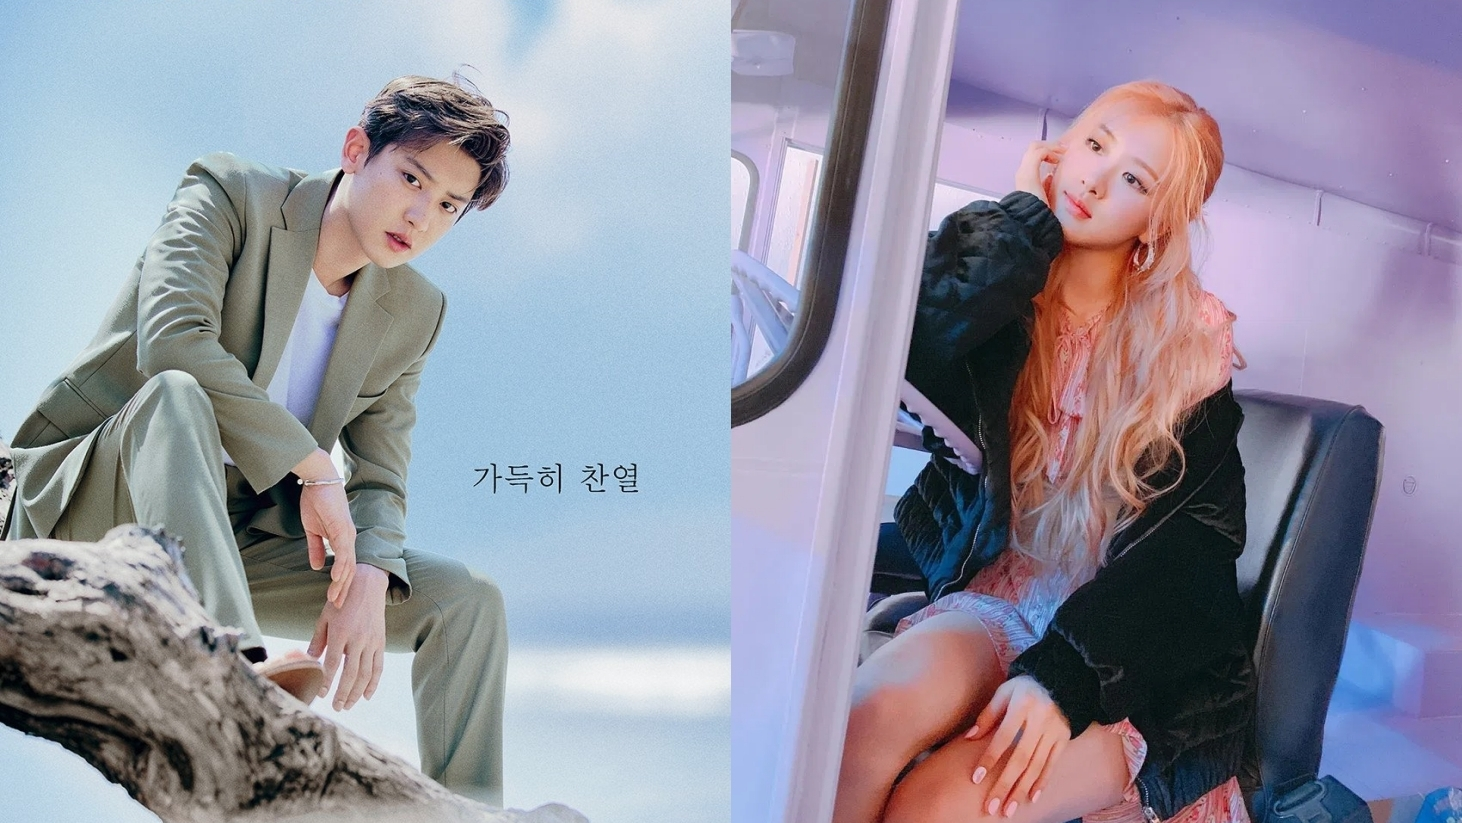 Circulating Fake Photos of EXO's Chanyeol and BLACKPINK's Rosé, Dispatch Gives Warning